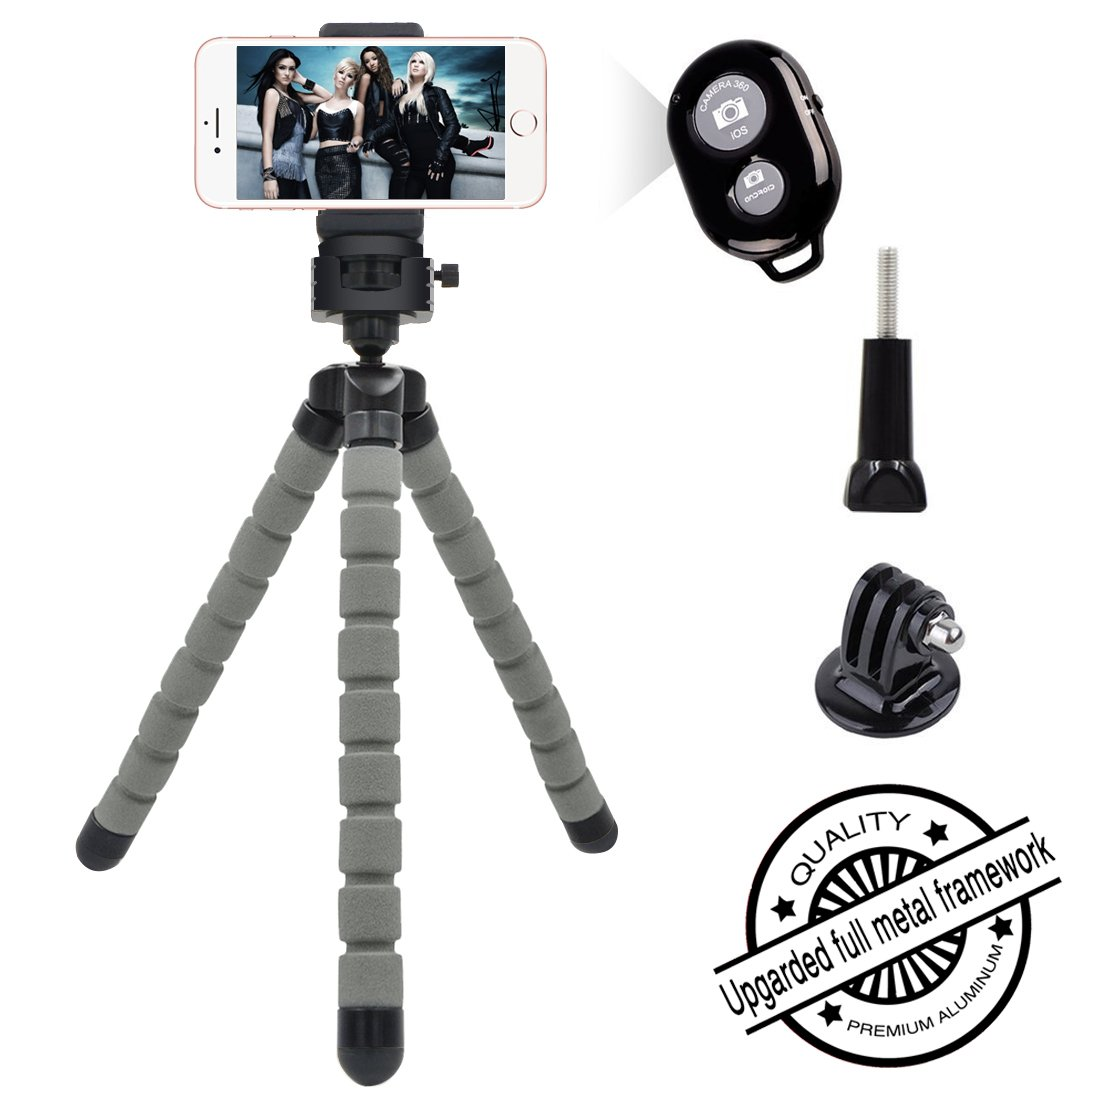 Phone Tripod, [Upgraded Full Metal Framework] Flexible Mini Tripod with Remote Shutter and Universal Phone Clip, Bukm Portable Tripod Stand for Iphone, Android iOS Smartphone, iPad, Camera, Gopro